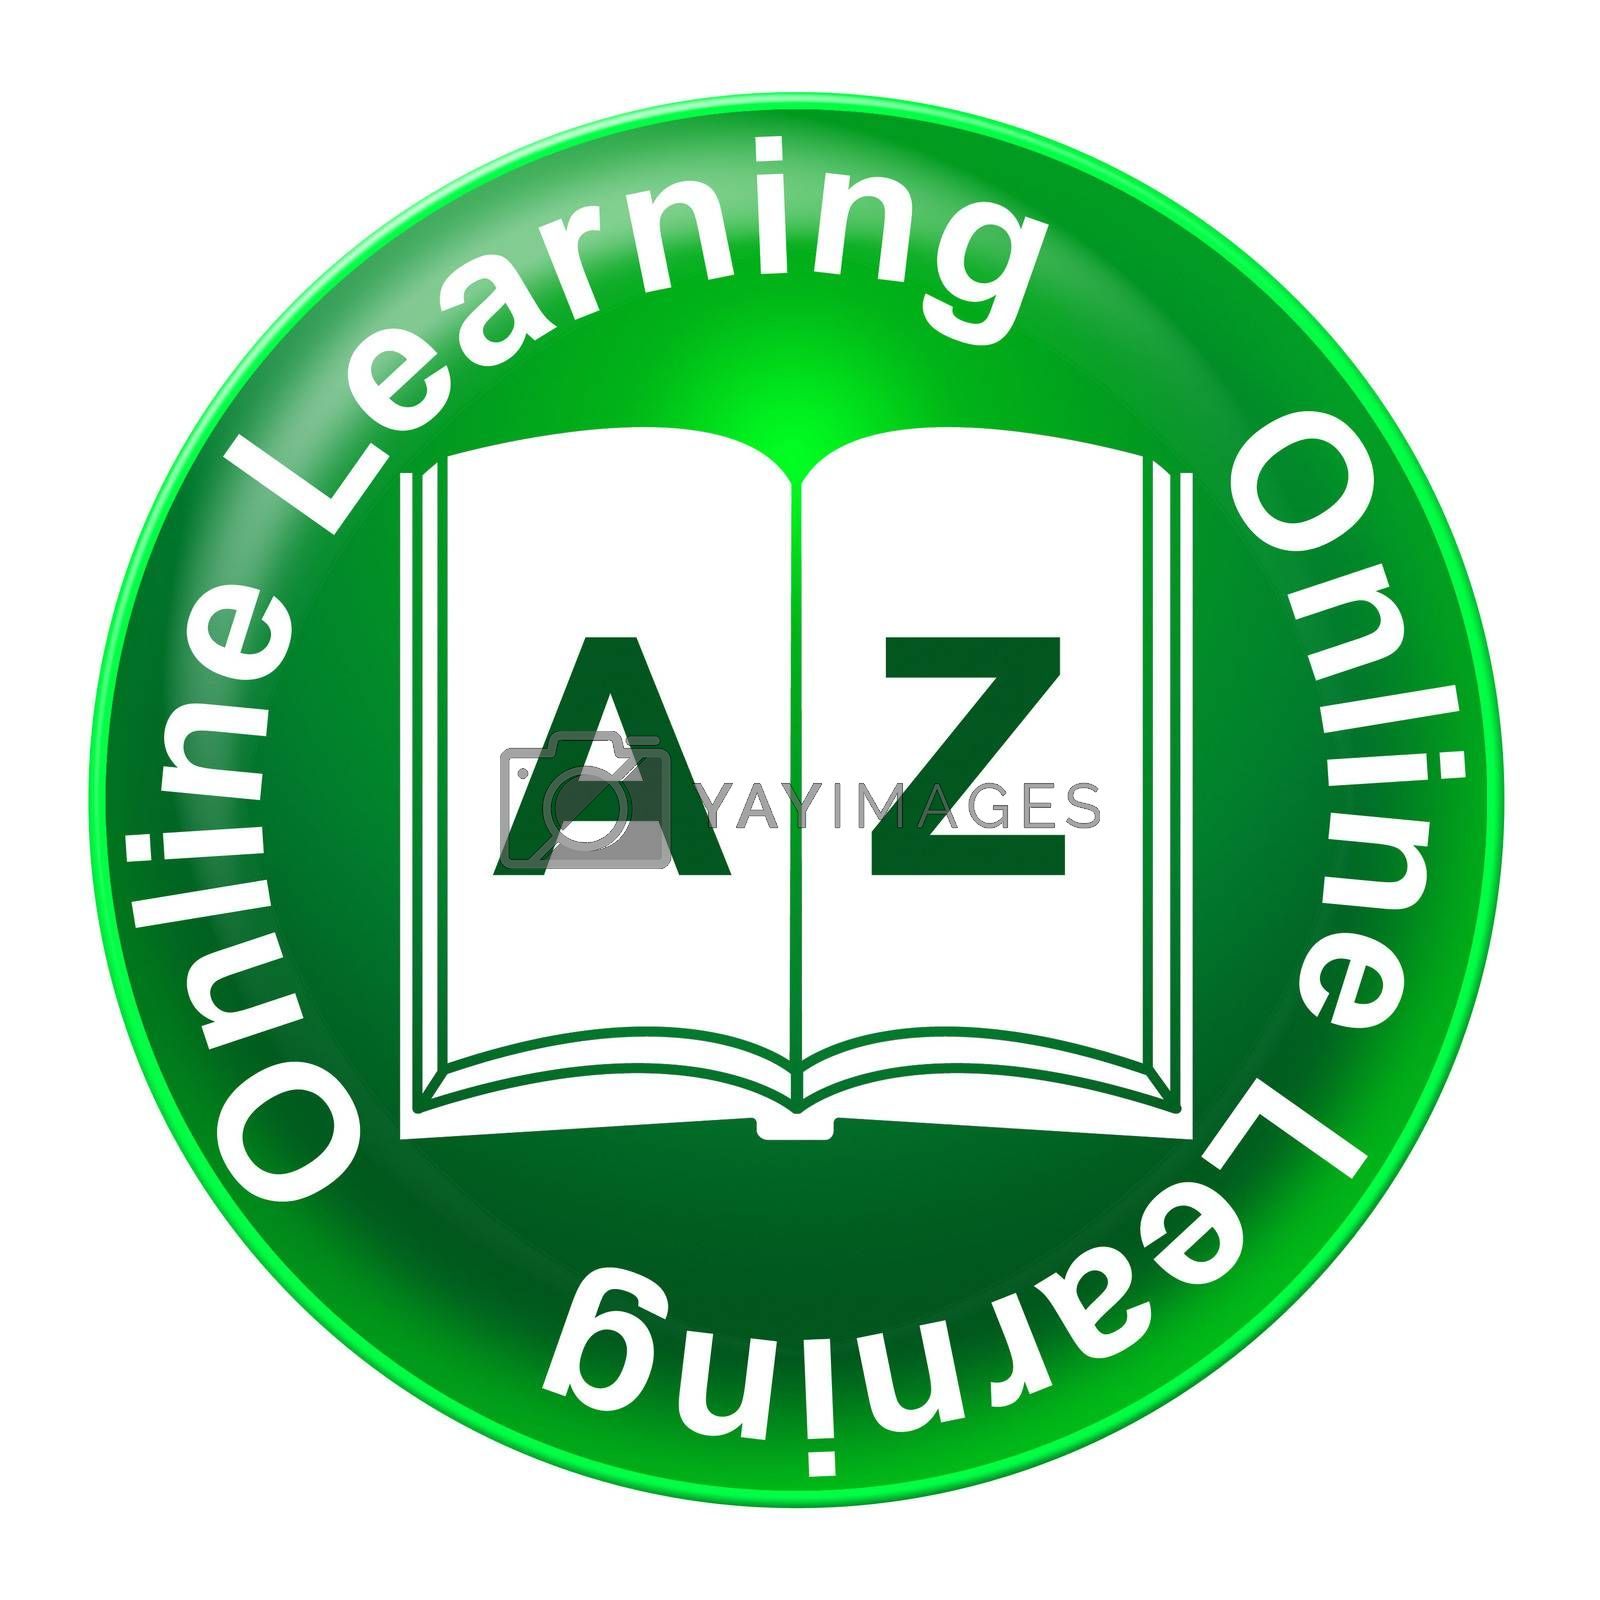 Online Learning Shows World Wide Web And College by stuartmiles